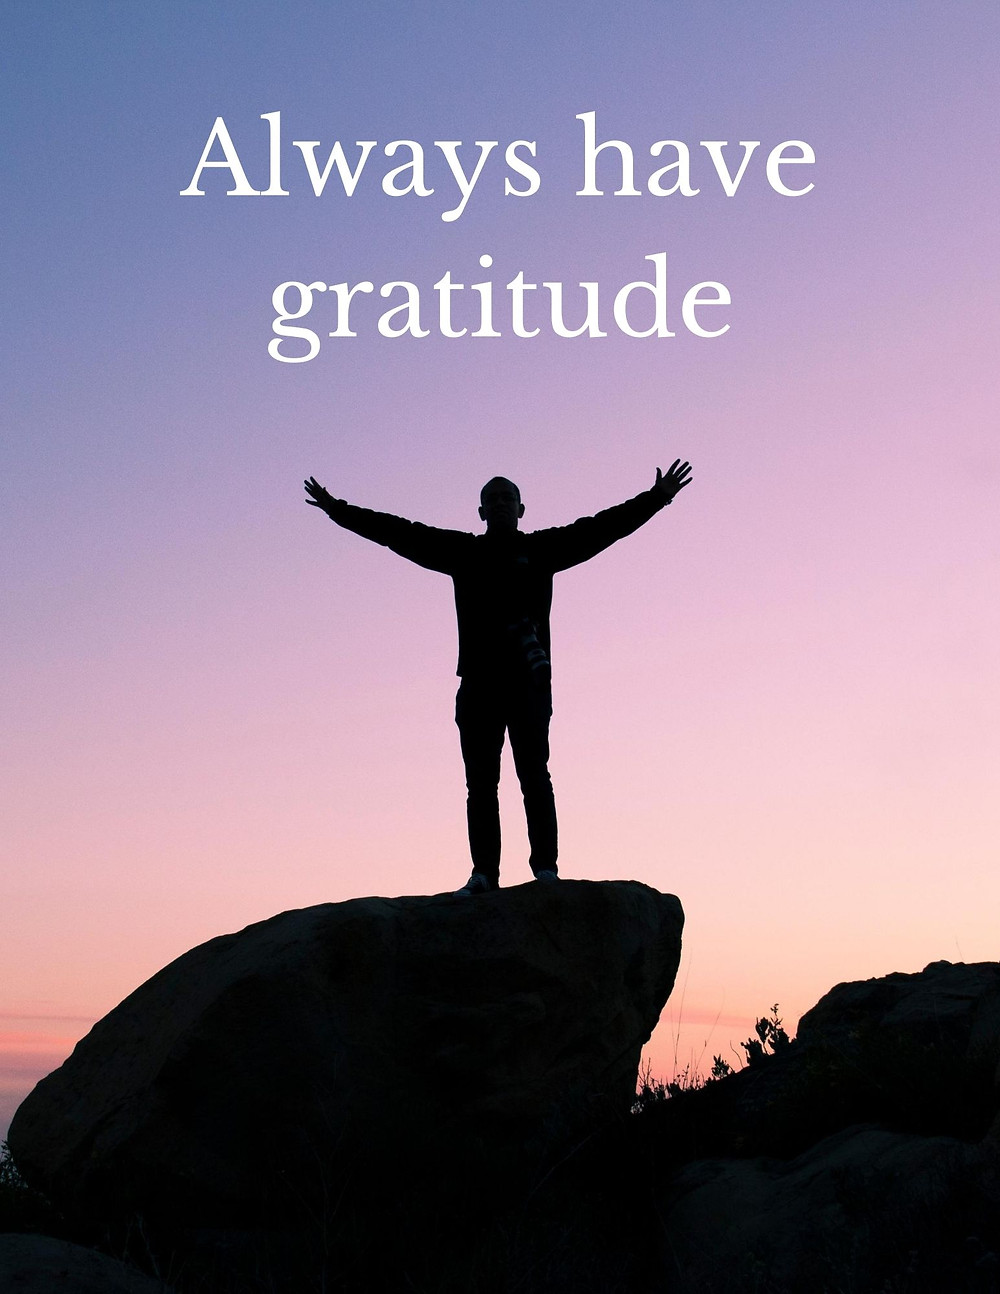 Always have gratitude